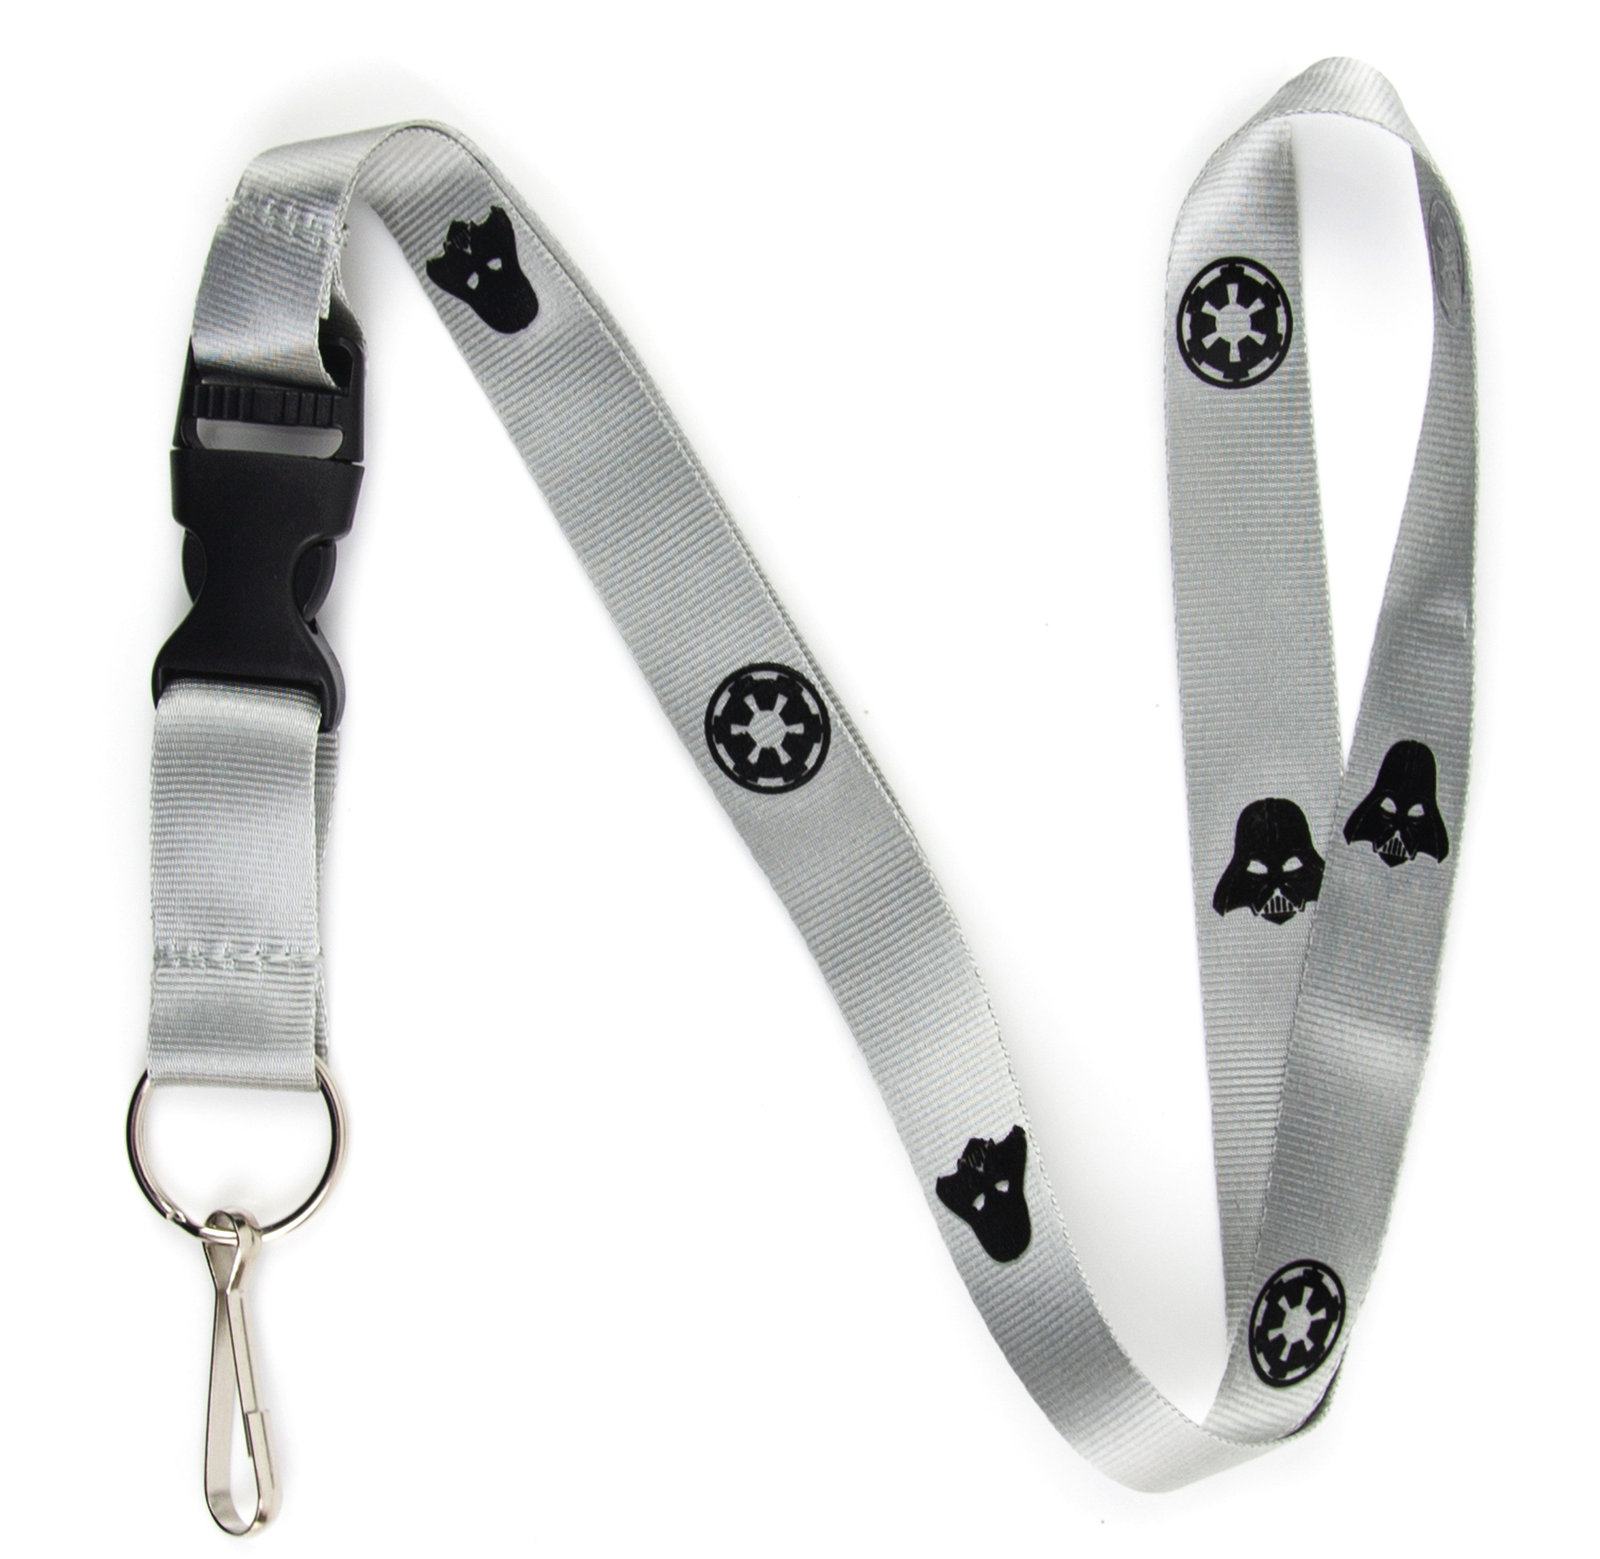 Darth Vader Lanyard Keychain and ID Holder with Detachable, Breakaway Buckle for